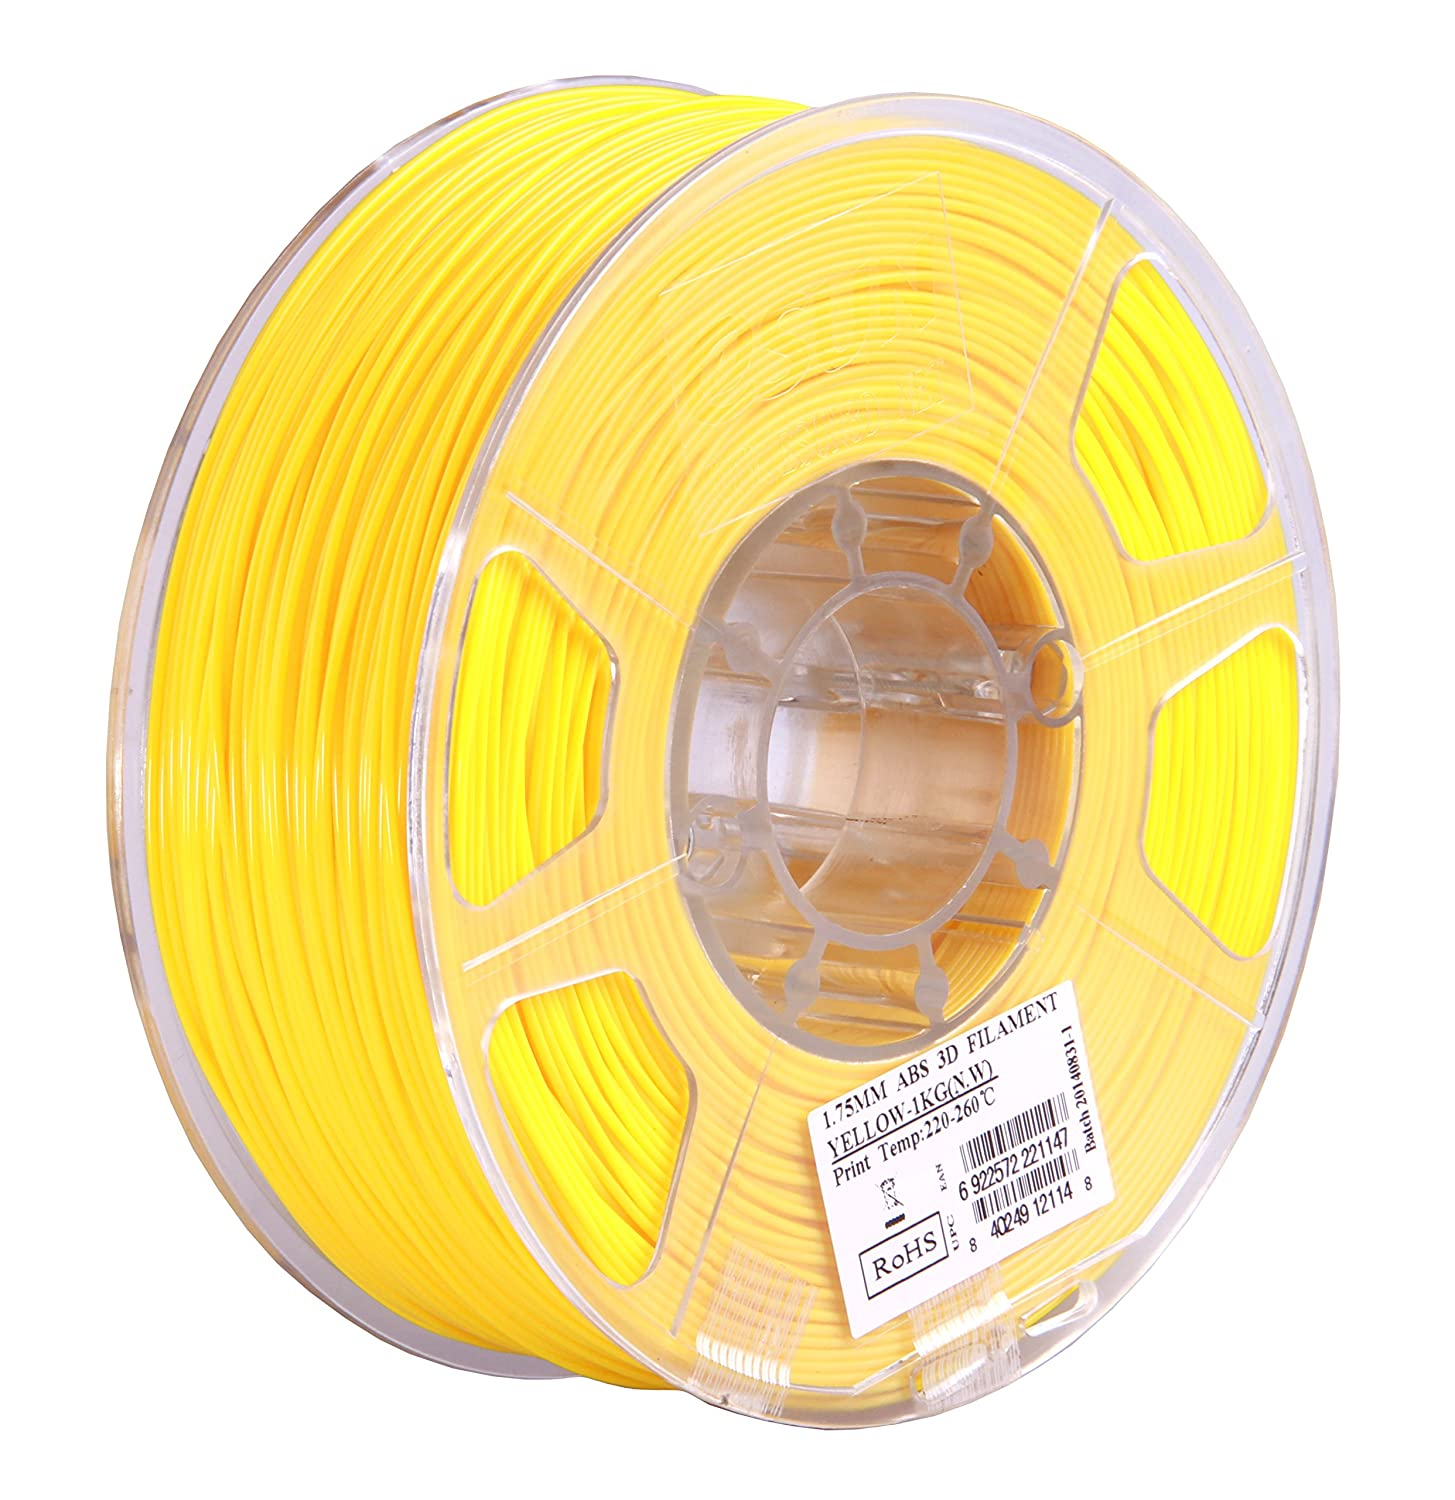 yellow 220-260 Grad C ABS 1kg / 1.75mm Universal für 3D Drucker z.B eSun 3D Filament Druck Tempe MakerBot RepRap MakerGear Ultimaker Mendel Huxlep UP Thing-o-matic Gelb